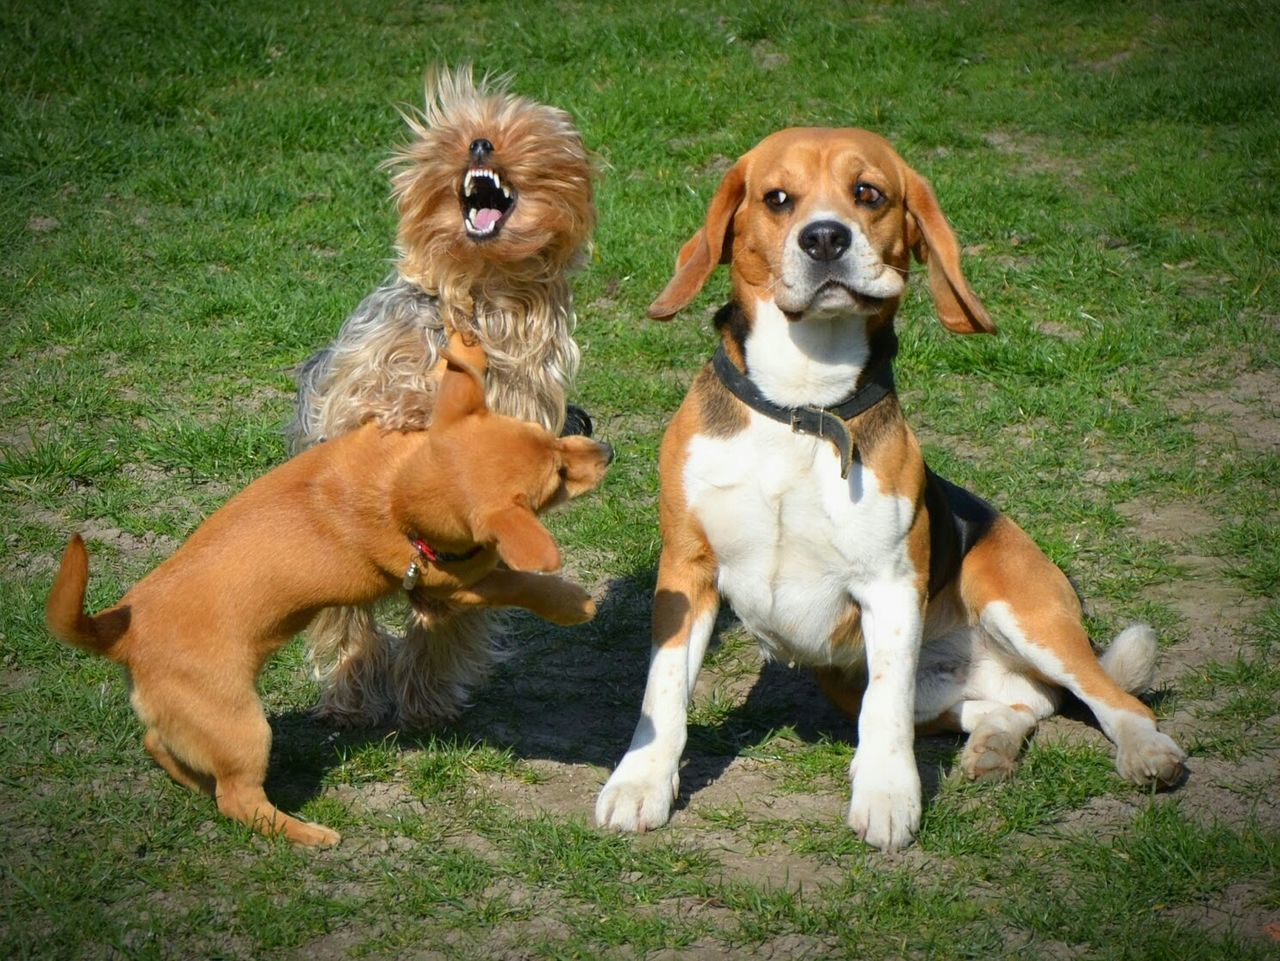 Dog Dogs Beagle Beaglelovers Yorkshire Terrier Yorkie Yorkshire Playing Funny Faces Funny